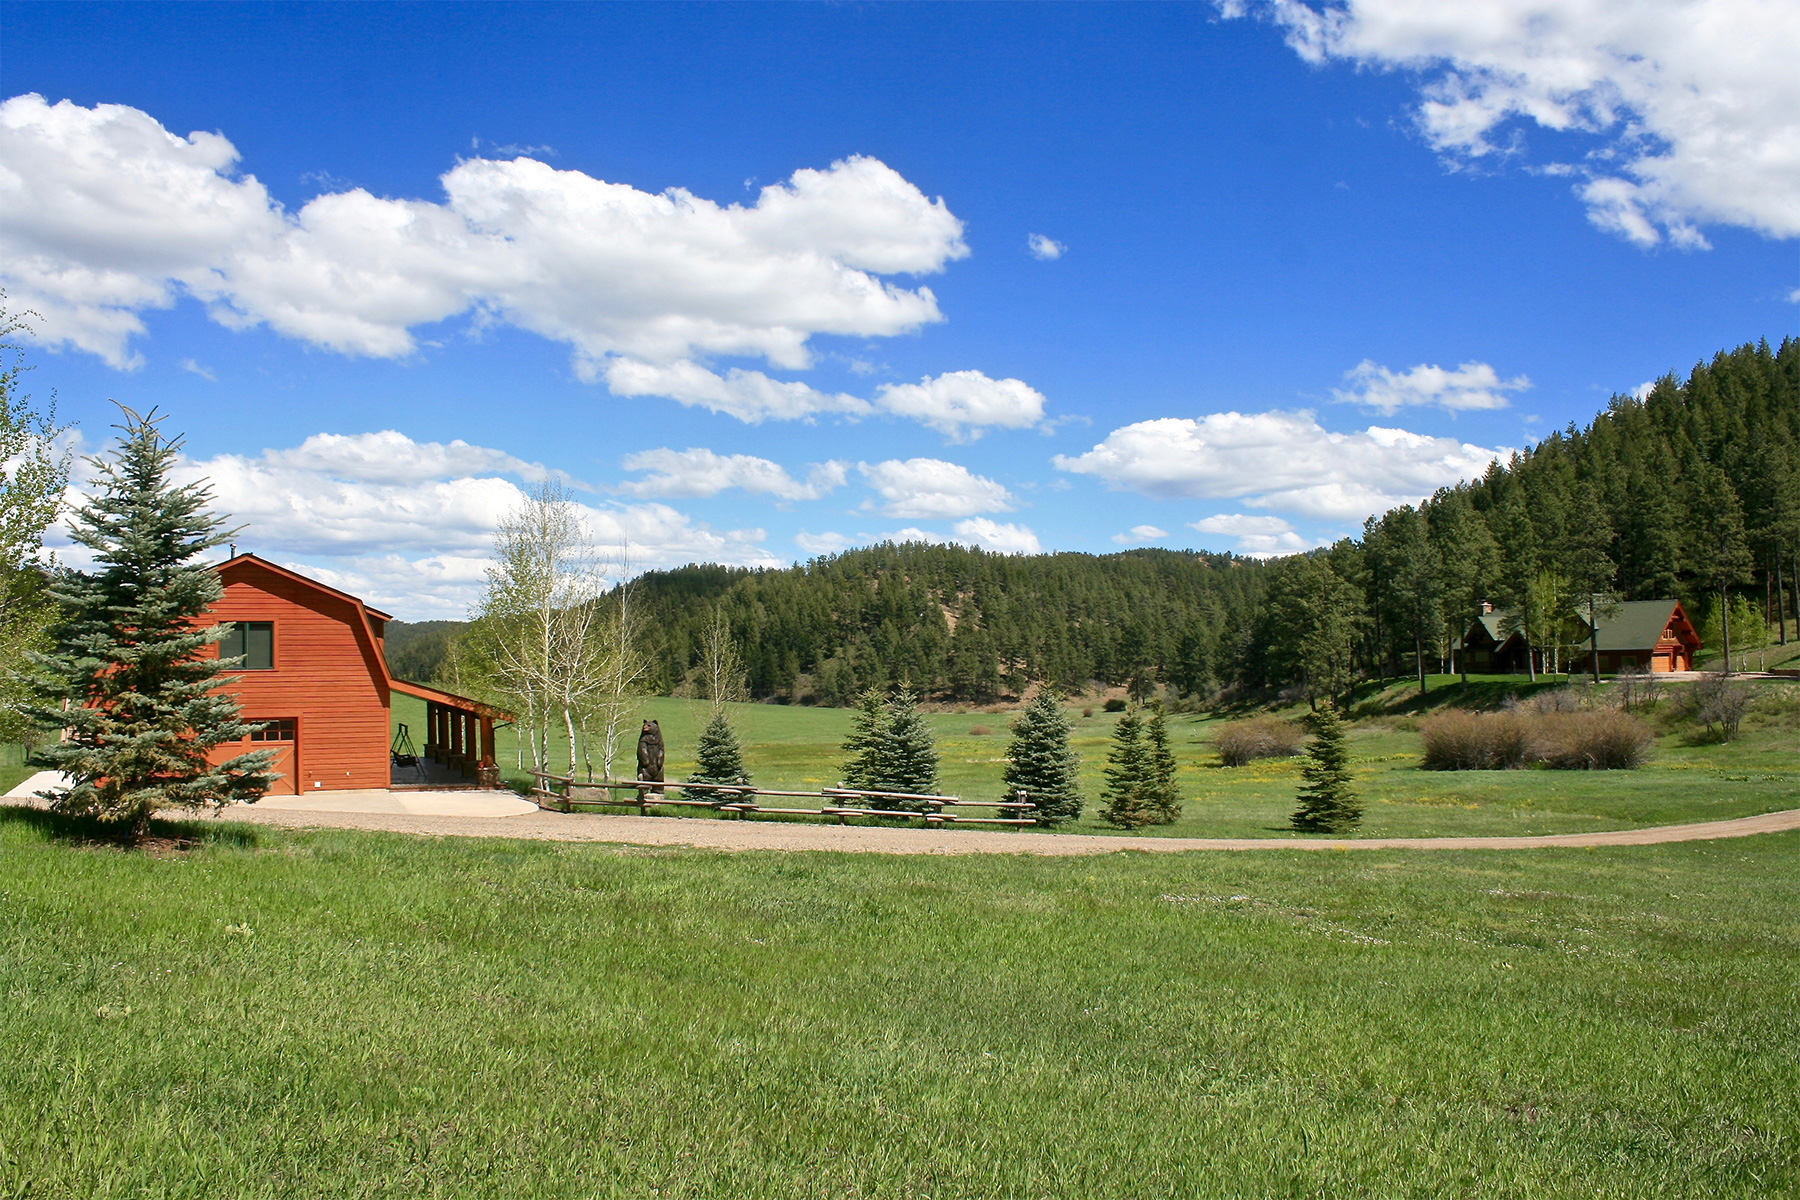 Single Family Home for Sale at Old Ponderosa Ranch 10676 CR 502 Bayfield, Colorado 81122 United States